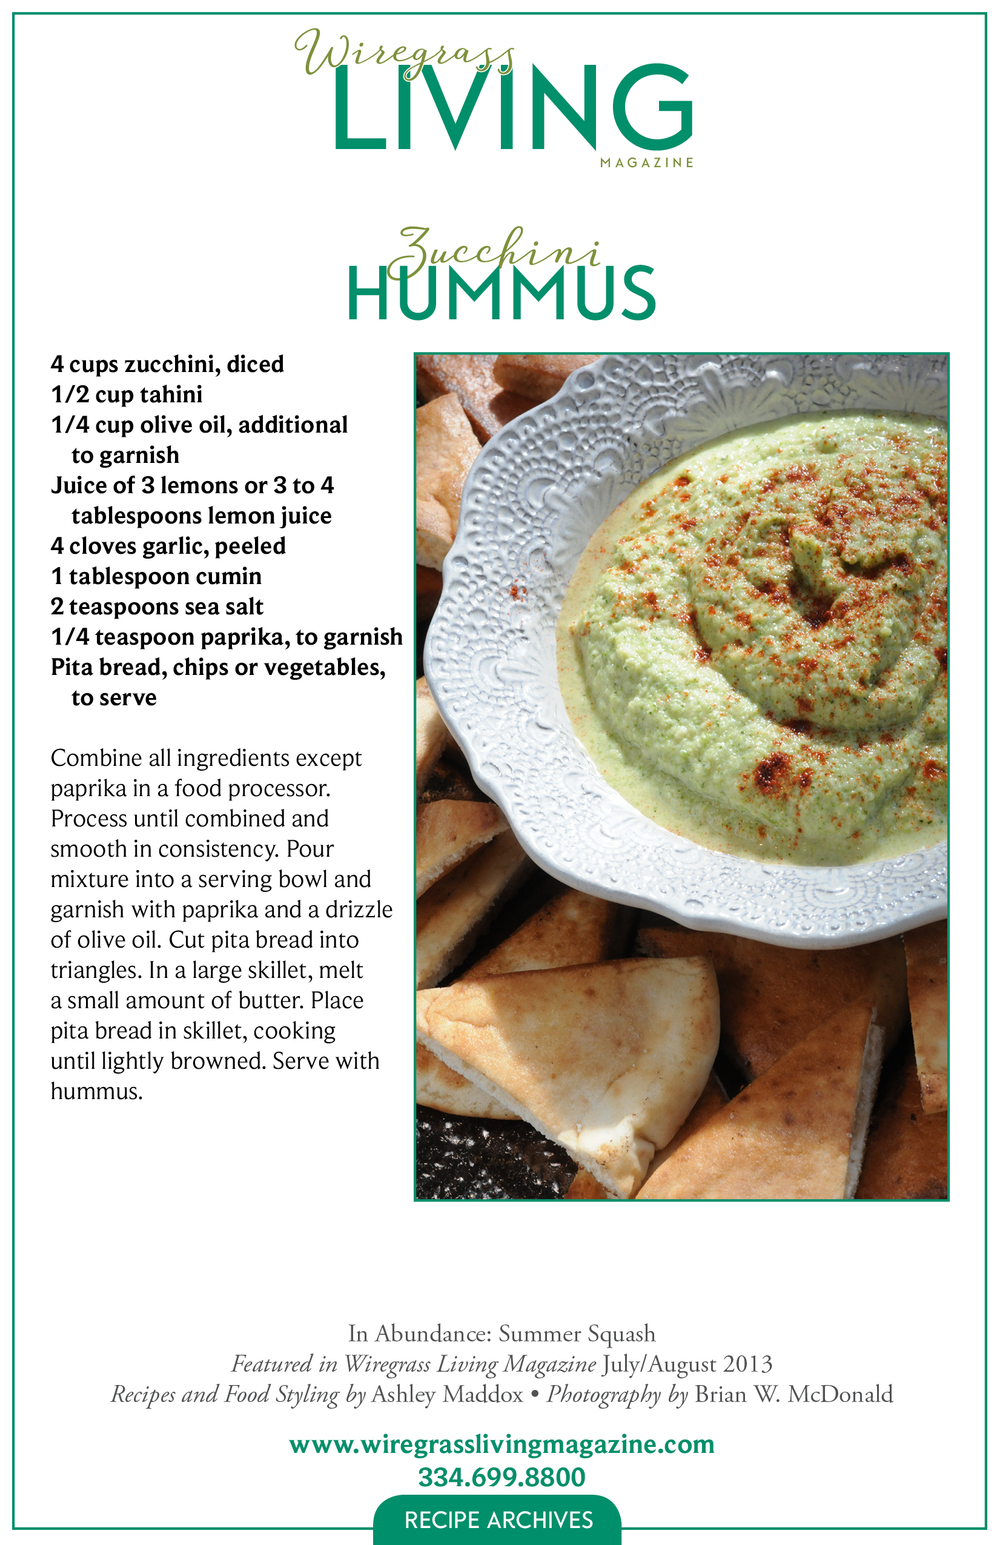 Zucchini Hummus, Wiregrass Living Magazine